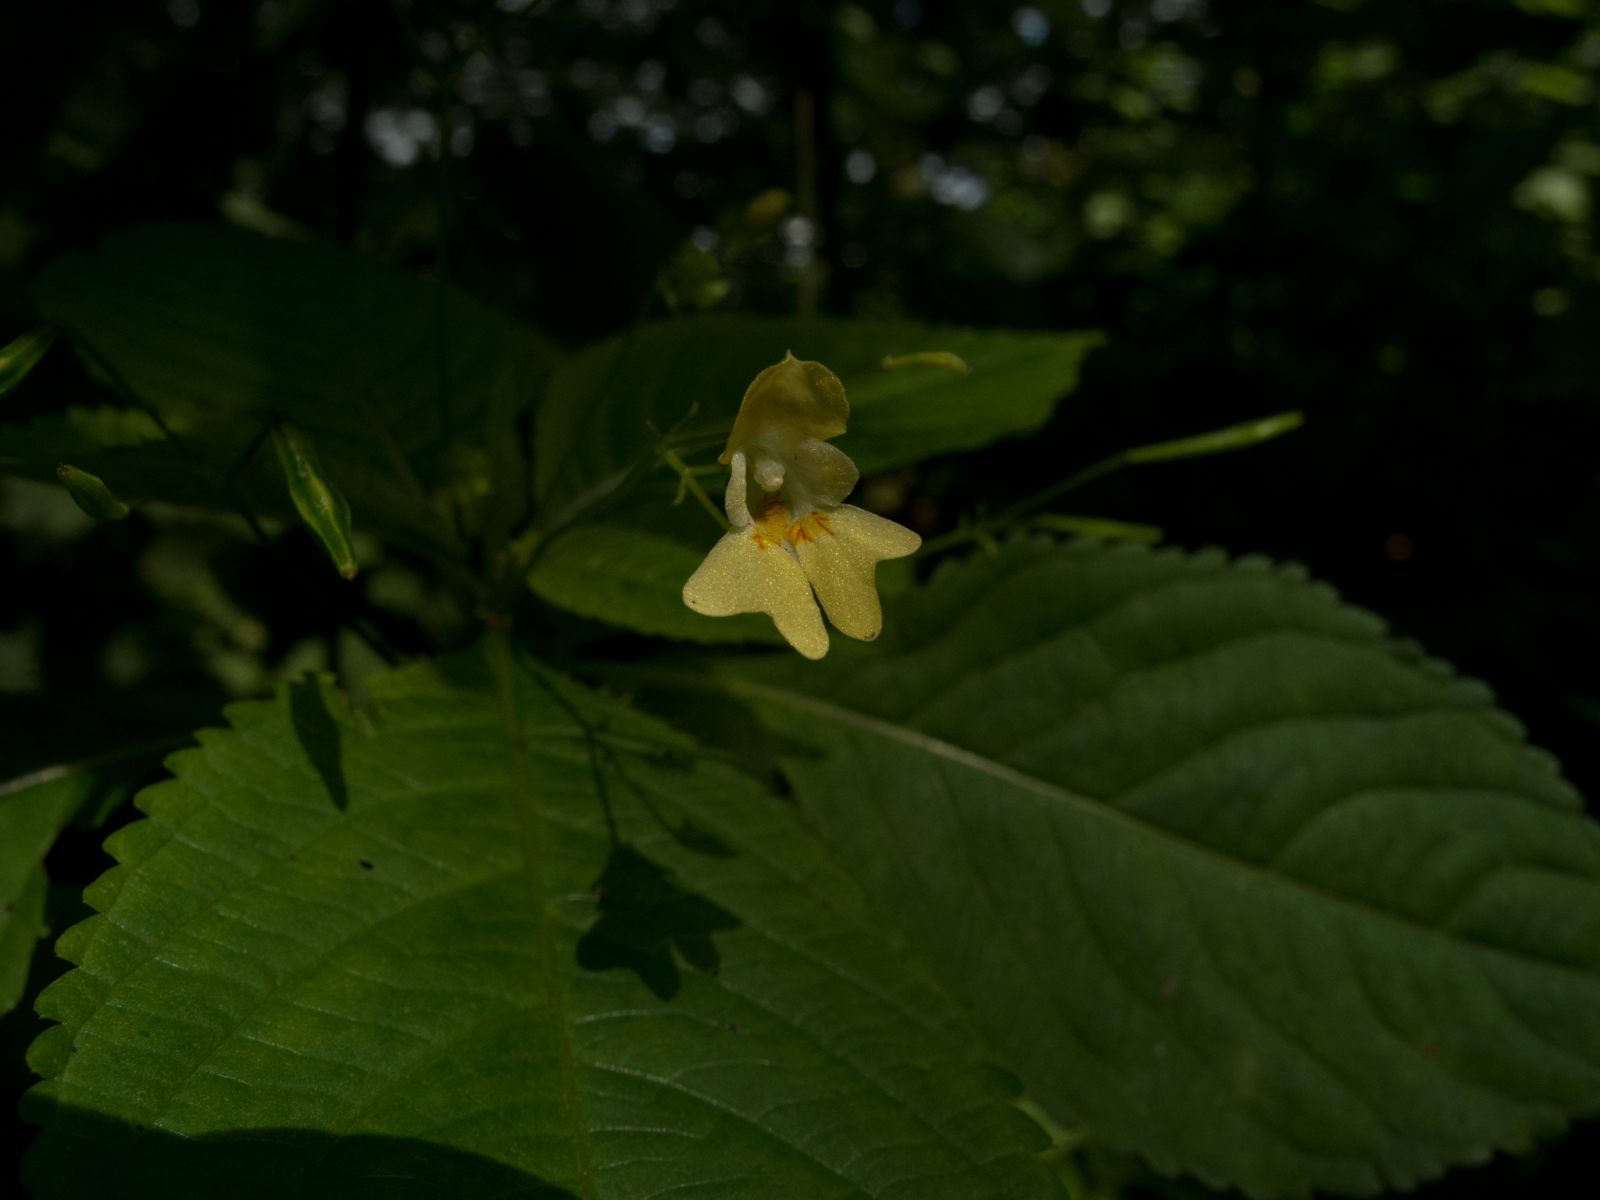 Small Balsam (Impatiens parviflora), NT Clumber Park, Notts.